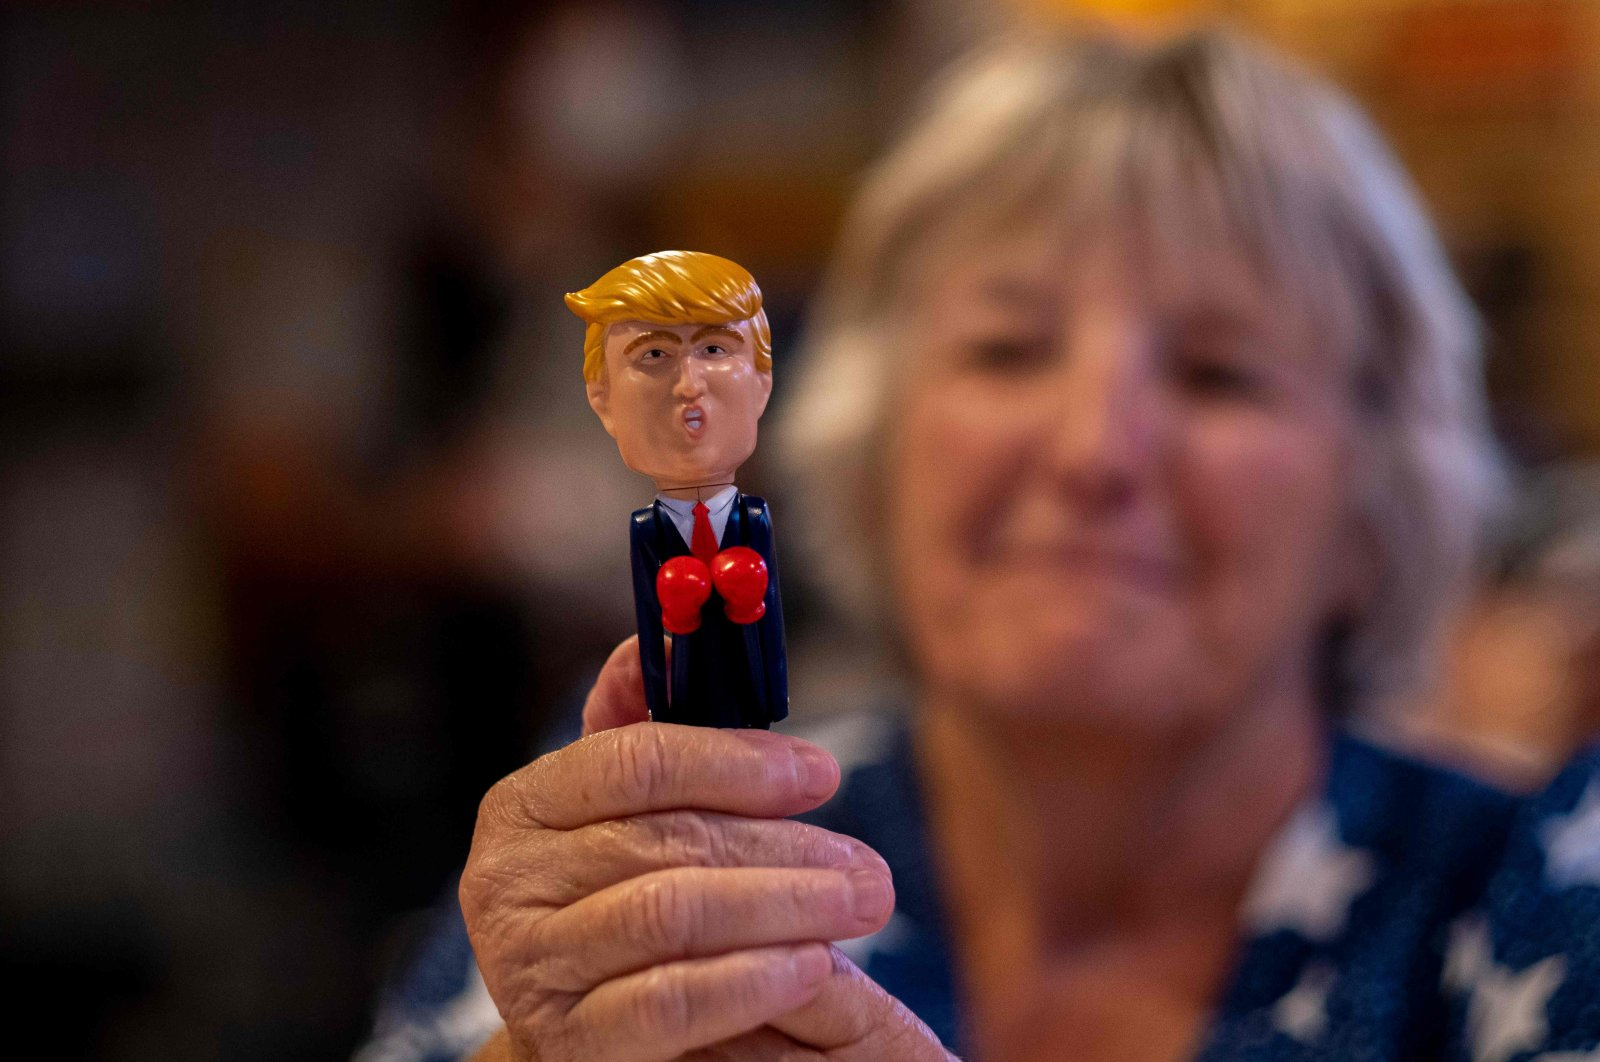 """A woman shows a Donald Trump boxing figurine at an election night watch party organized by the group """"Villagers for Trump"""" in The Villages, Florida, on November 3, 2020. (AFP Photo)"""